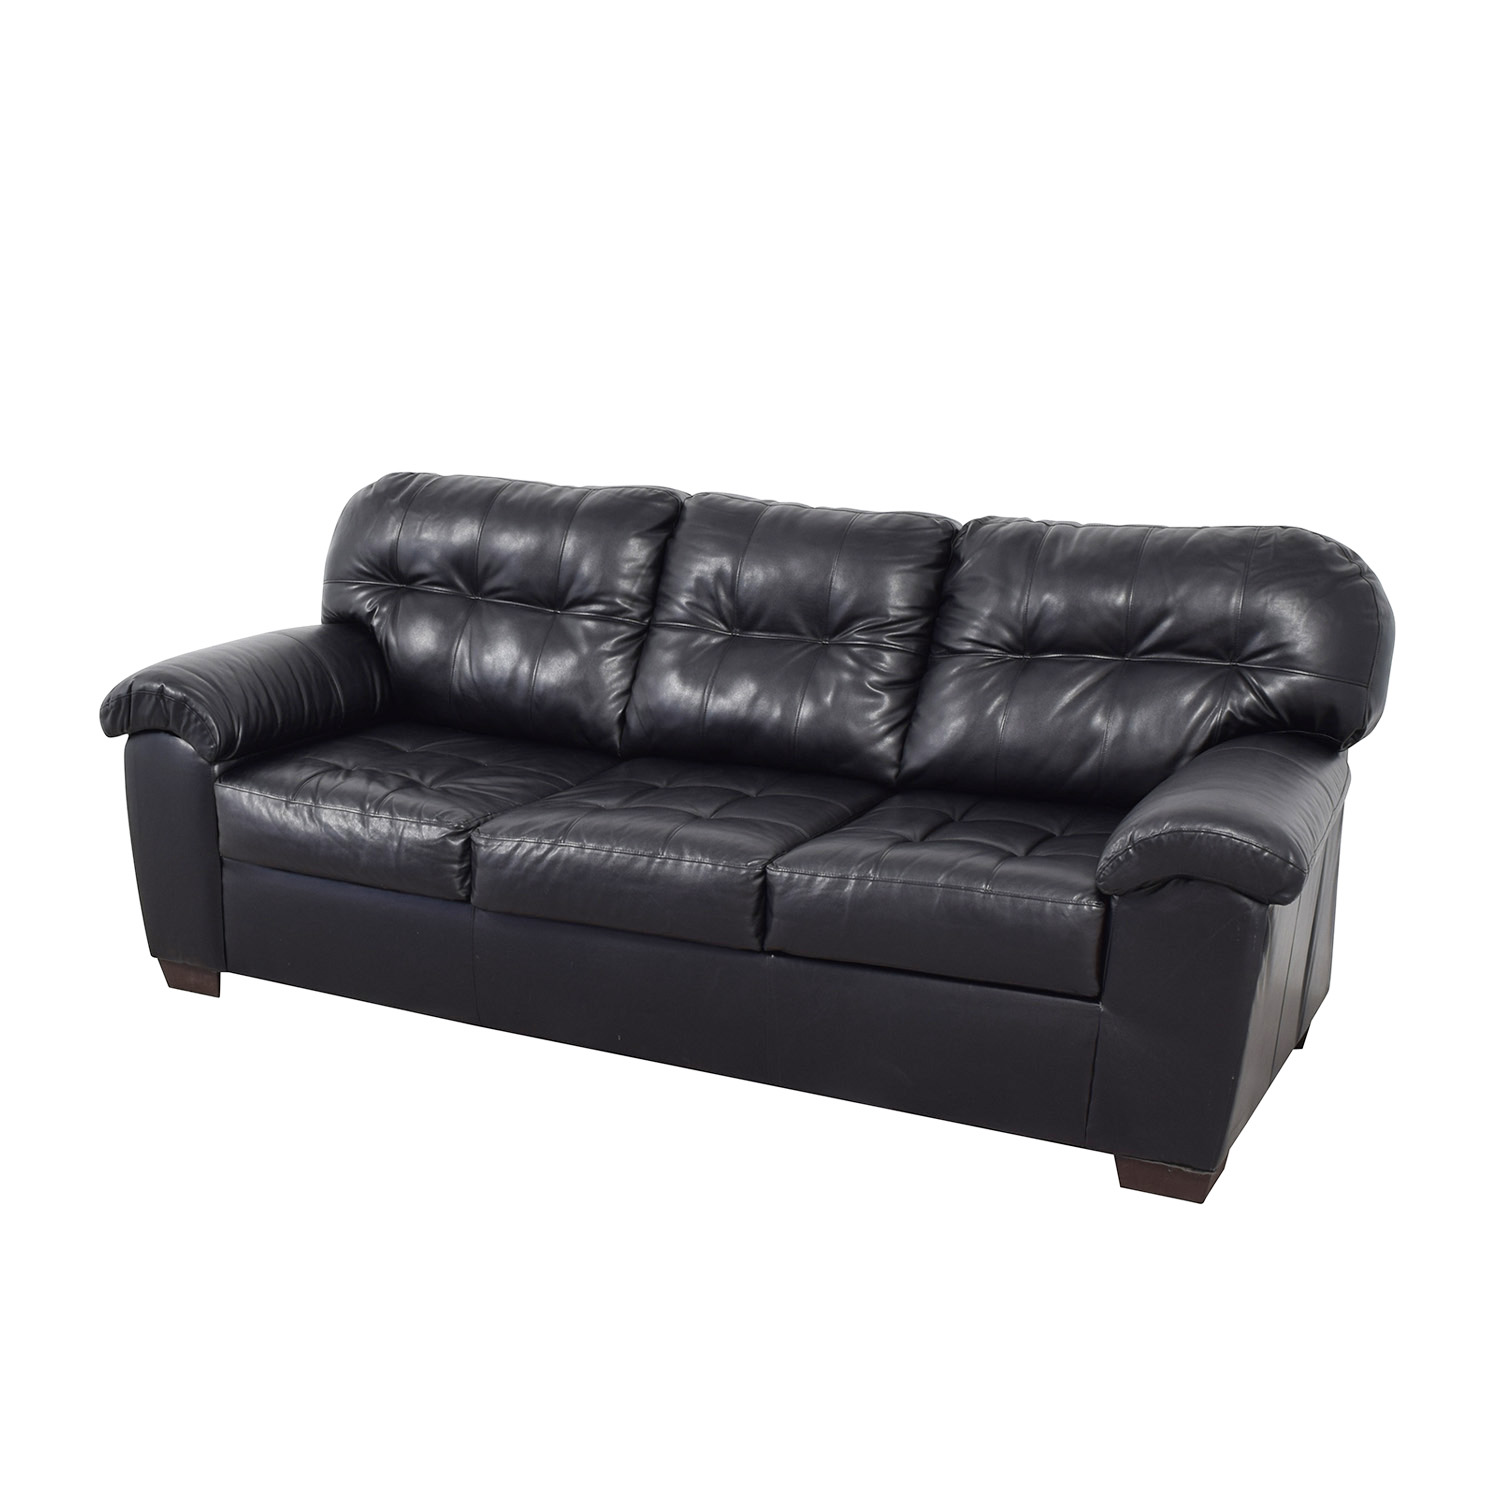 buy Black Tufted Leather Three-Cushion Couch  Classic Sofas